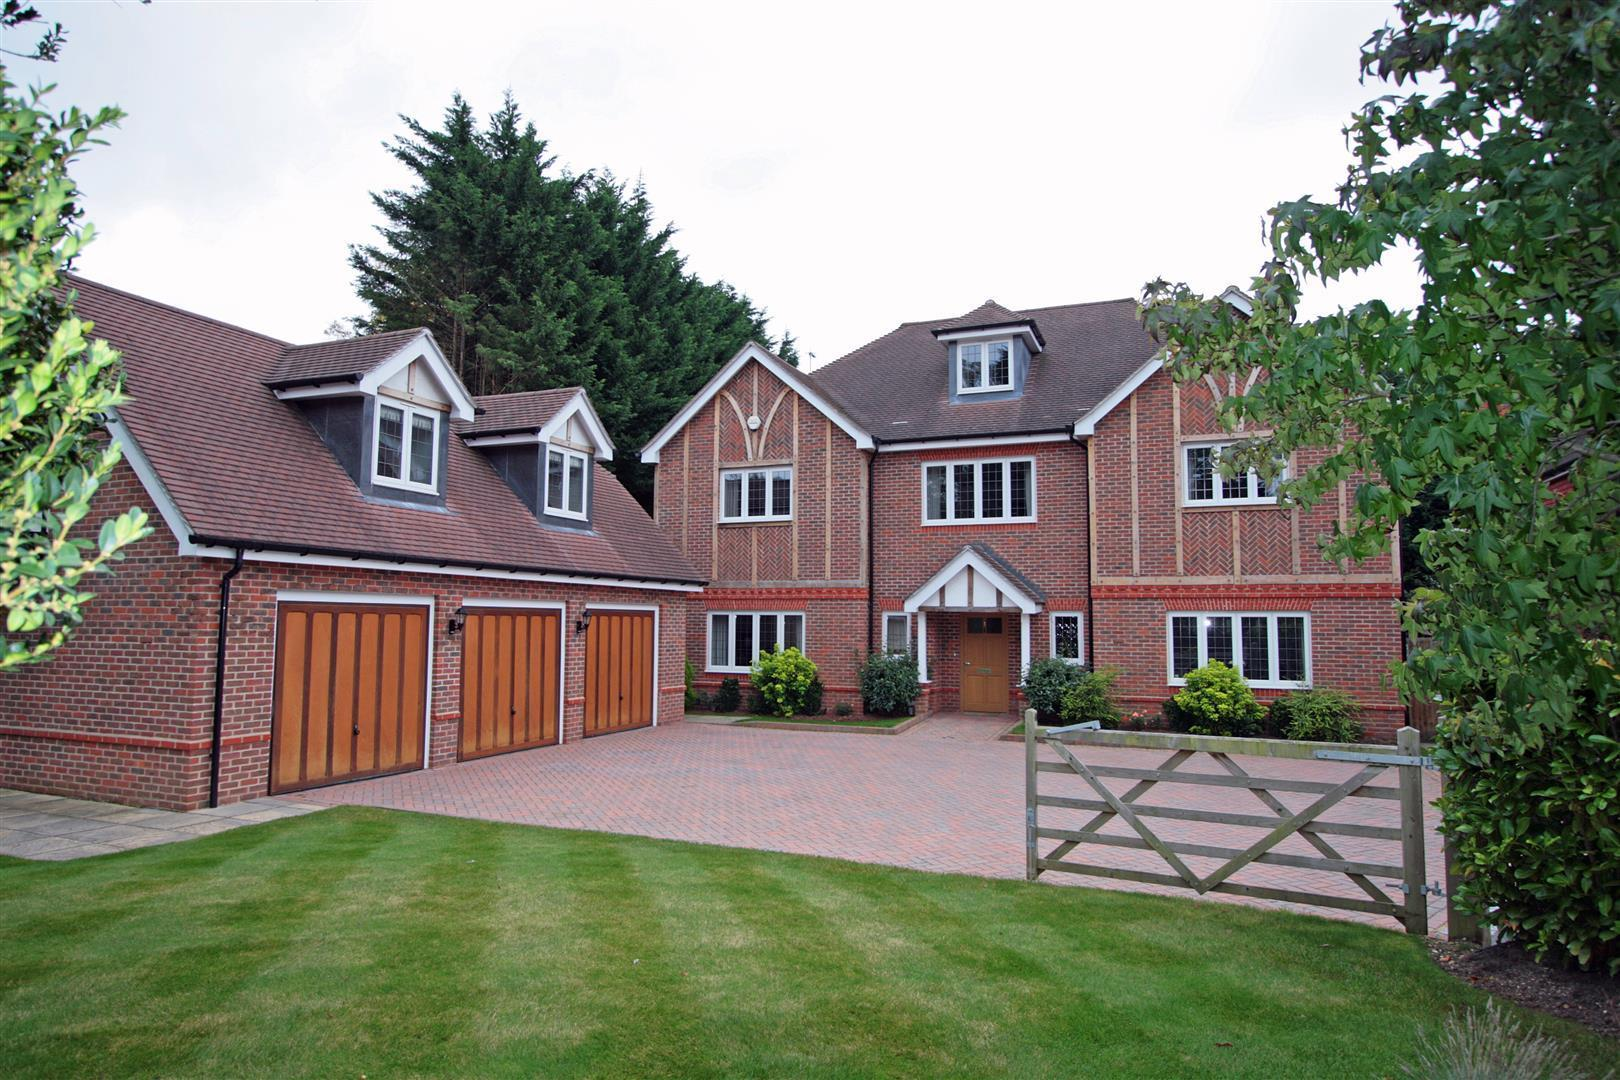 <p>This swanky new-ish property in Gerrards Cross, Buckinghamshire, made number four, despite only going on the market in October.</p>  <p>It ticks all the boxes that have put so many of these properties on the list - being detached, and offering five bedrooms plus a garage.</p>  <p>The price reflects the fact it offers all that - in one of the priciest parts of the country. It makes it the most expensive property in the top ten.</p>